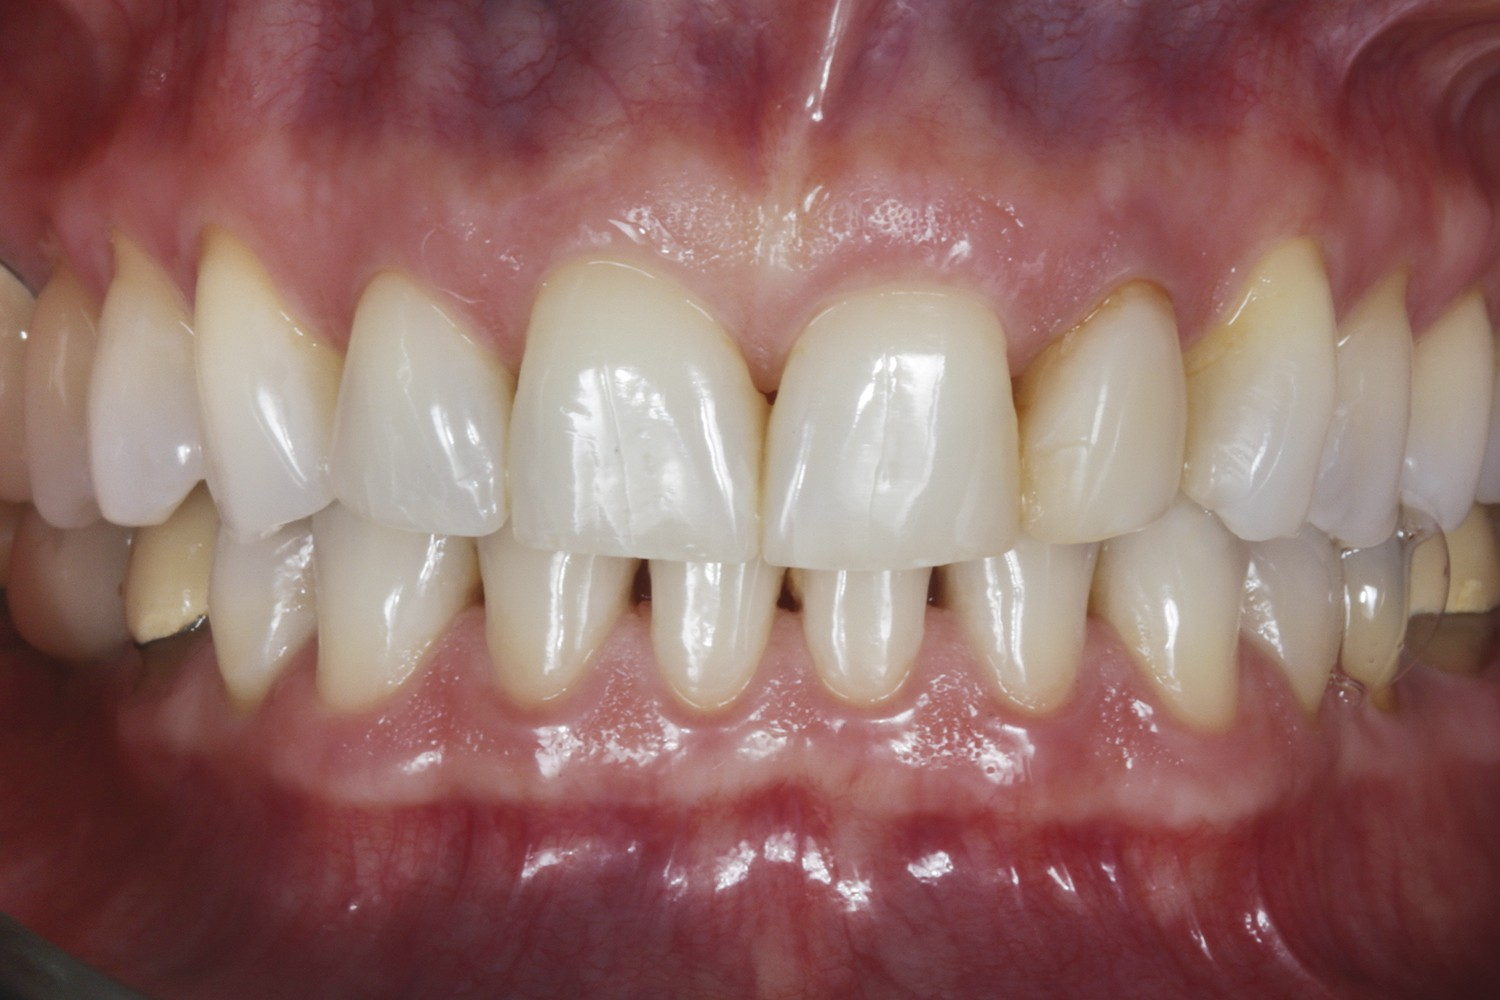 Occlusal plastic rehabilitation: Case report